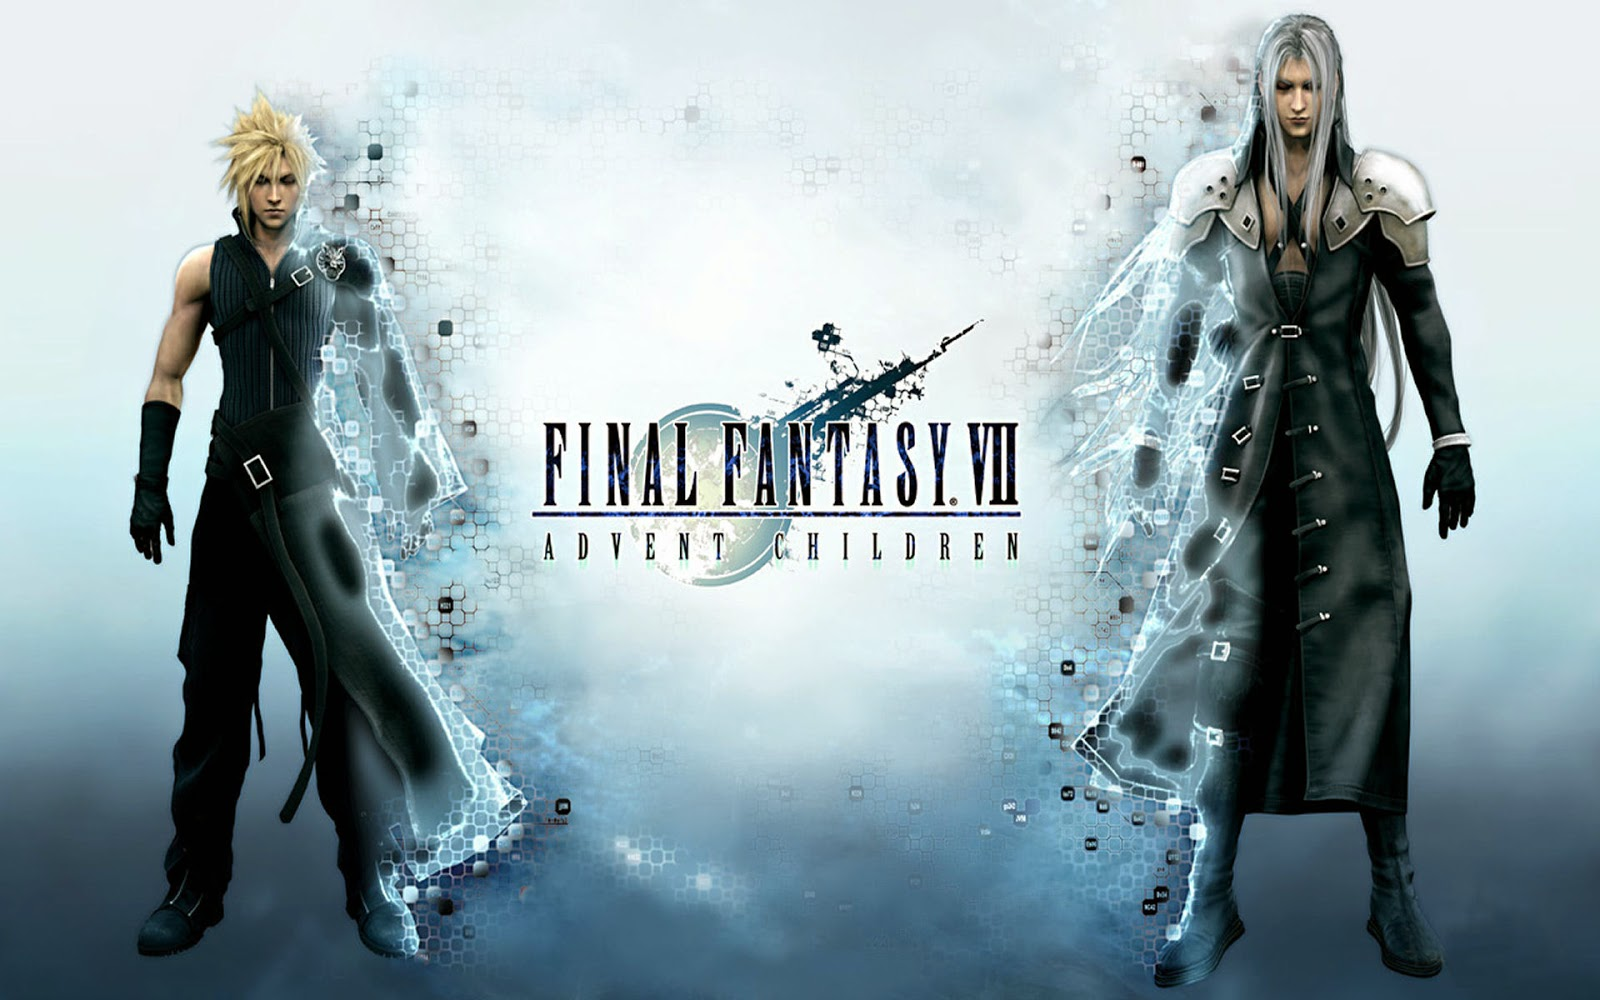 Papel de parede Final Fantasy VII Advent Children para pc